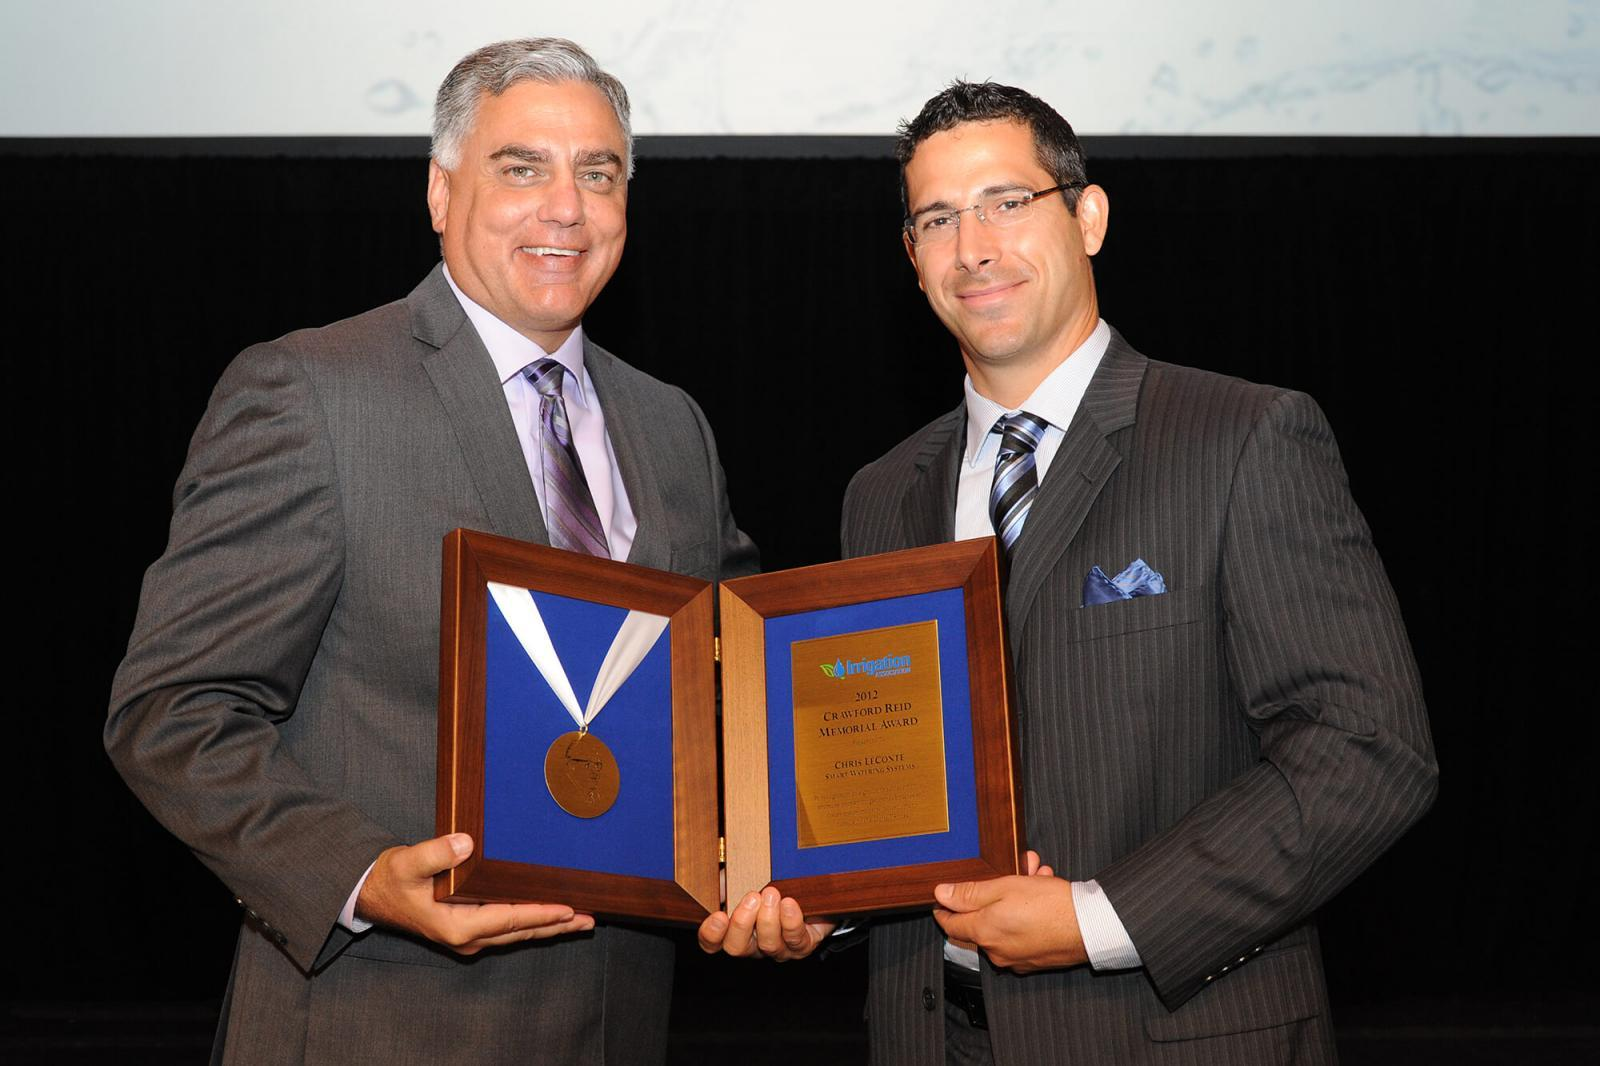 Toro president Phil Burkart, left, presents Chris Le Conte of Smart Watering Systems with the 2012 Crawford Reid Memorial Award.